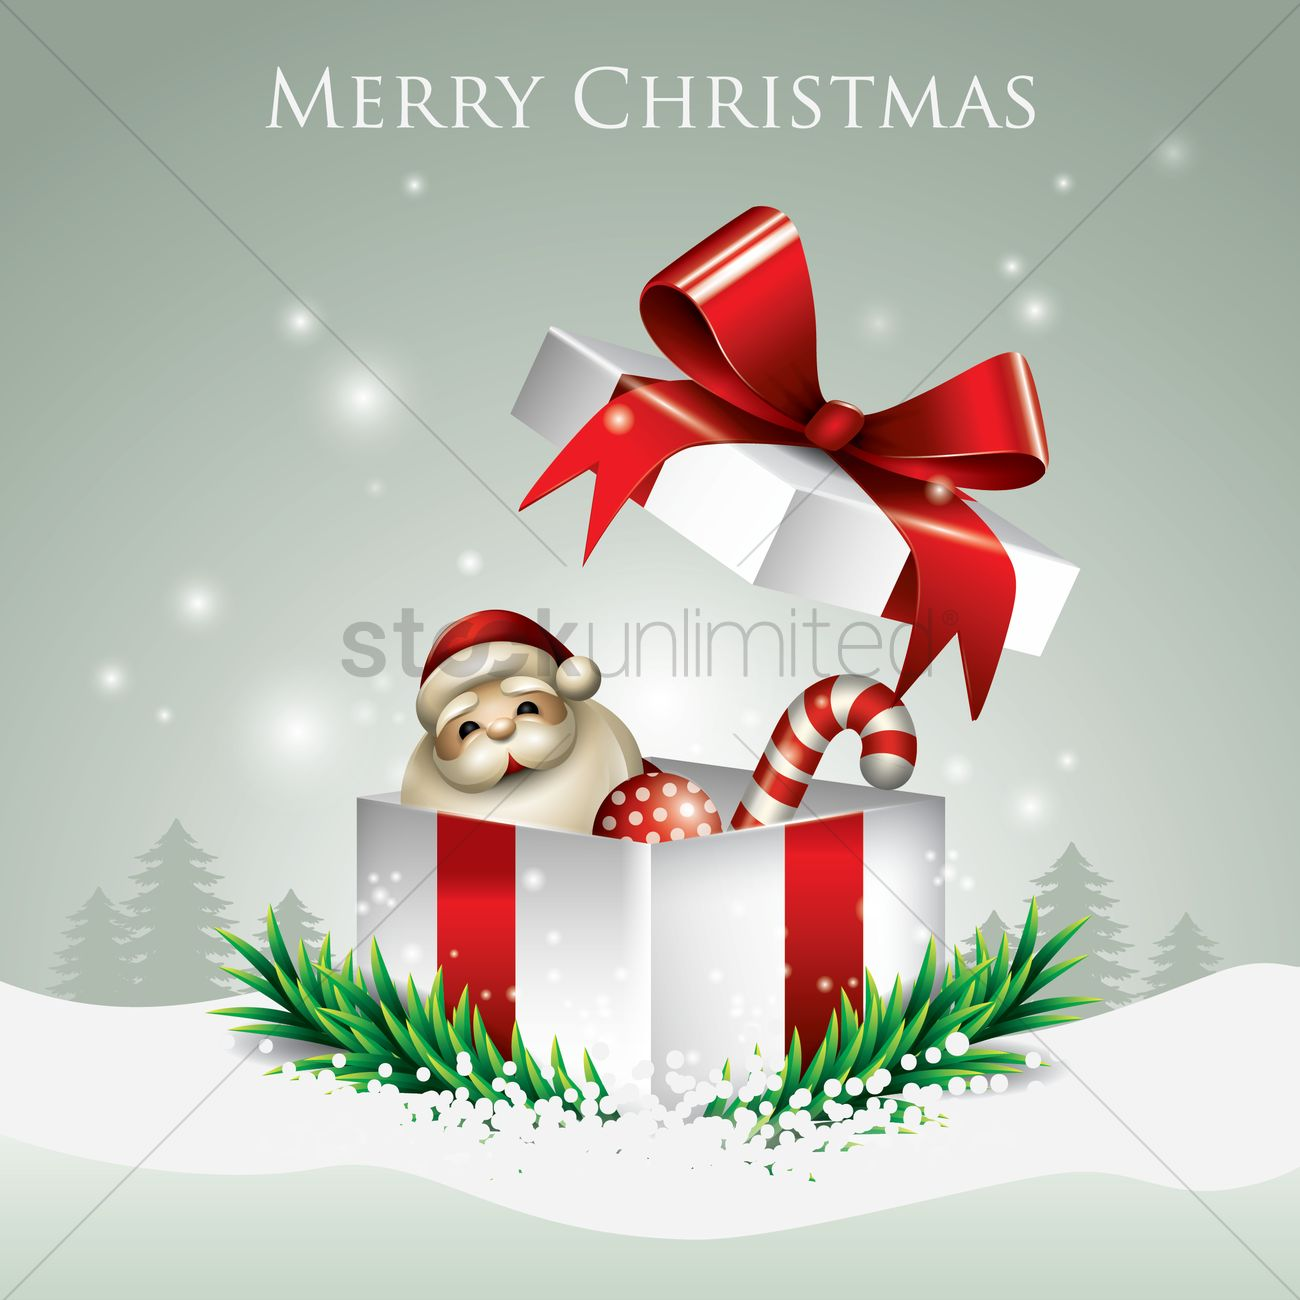 Merry Christmas Gift.Merry Christmas With Gift Box Vector Image 1935440